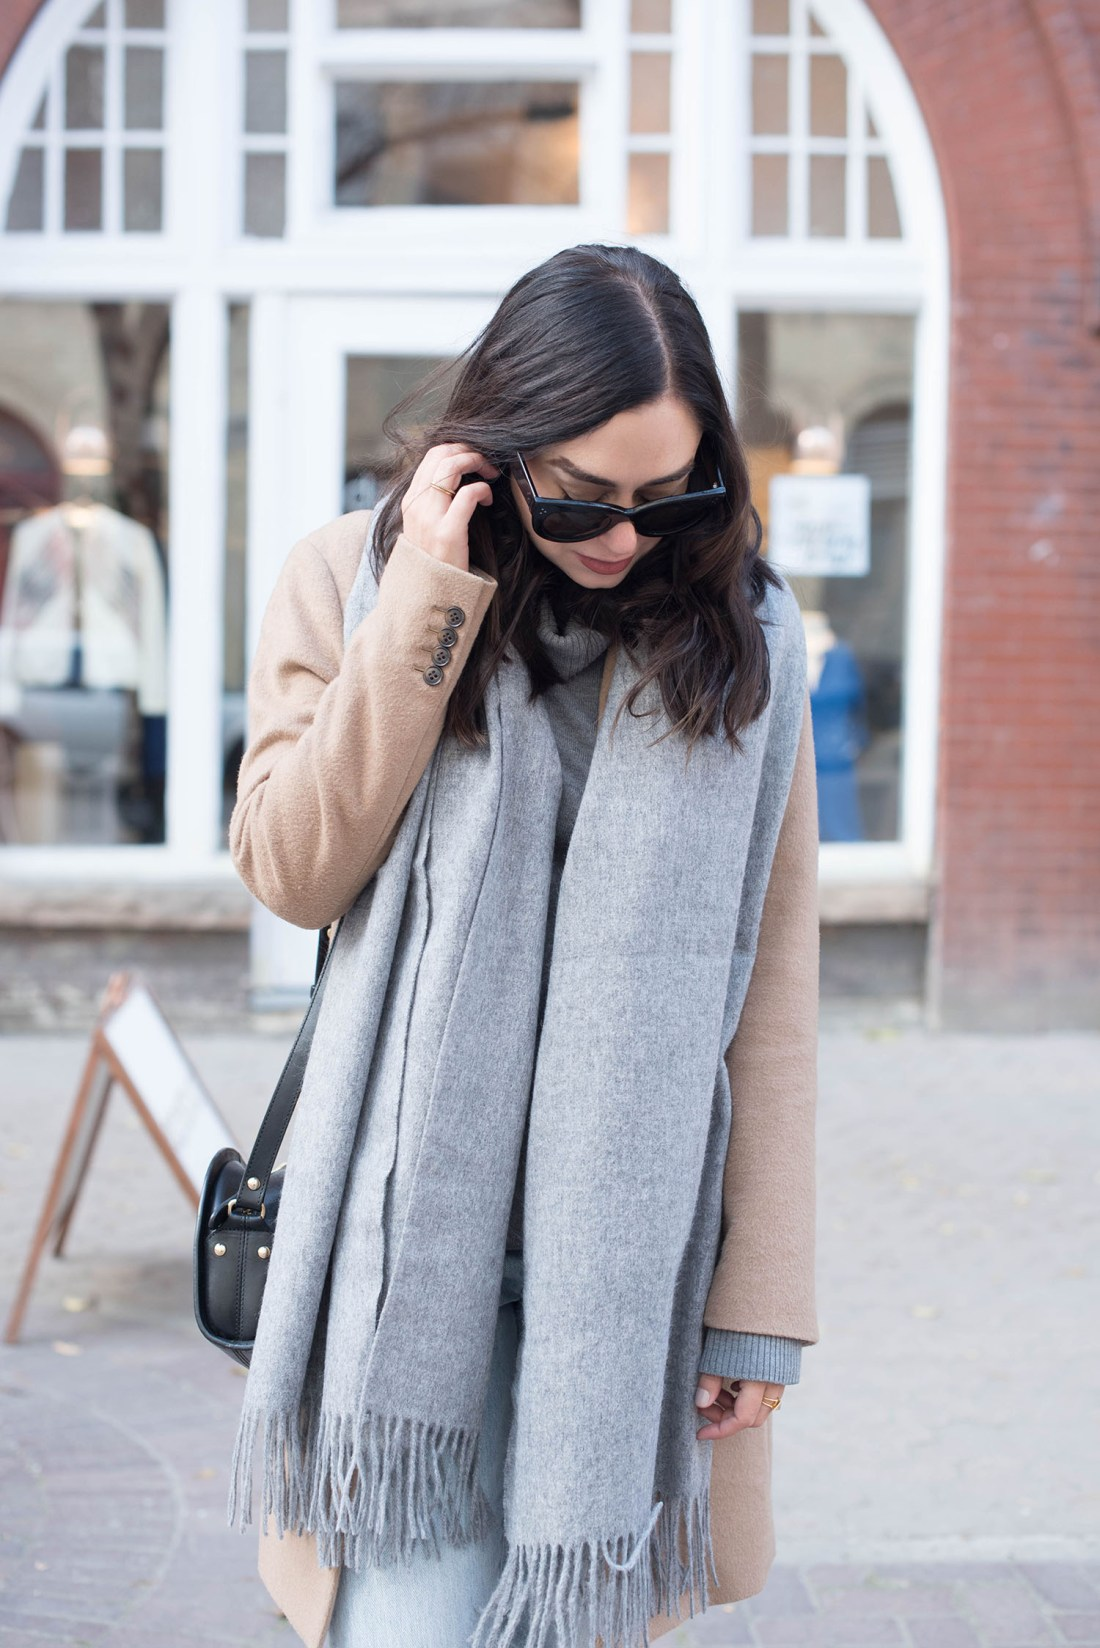 Portrait of fashion blogger Cee Fardoe of Coco & Vera wearing an ASOS wool scarf and Celine Audrey sunglasses